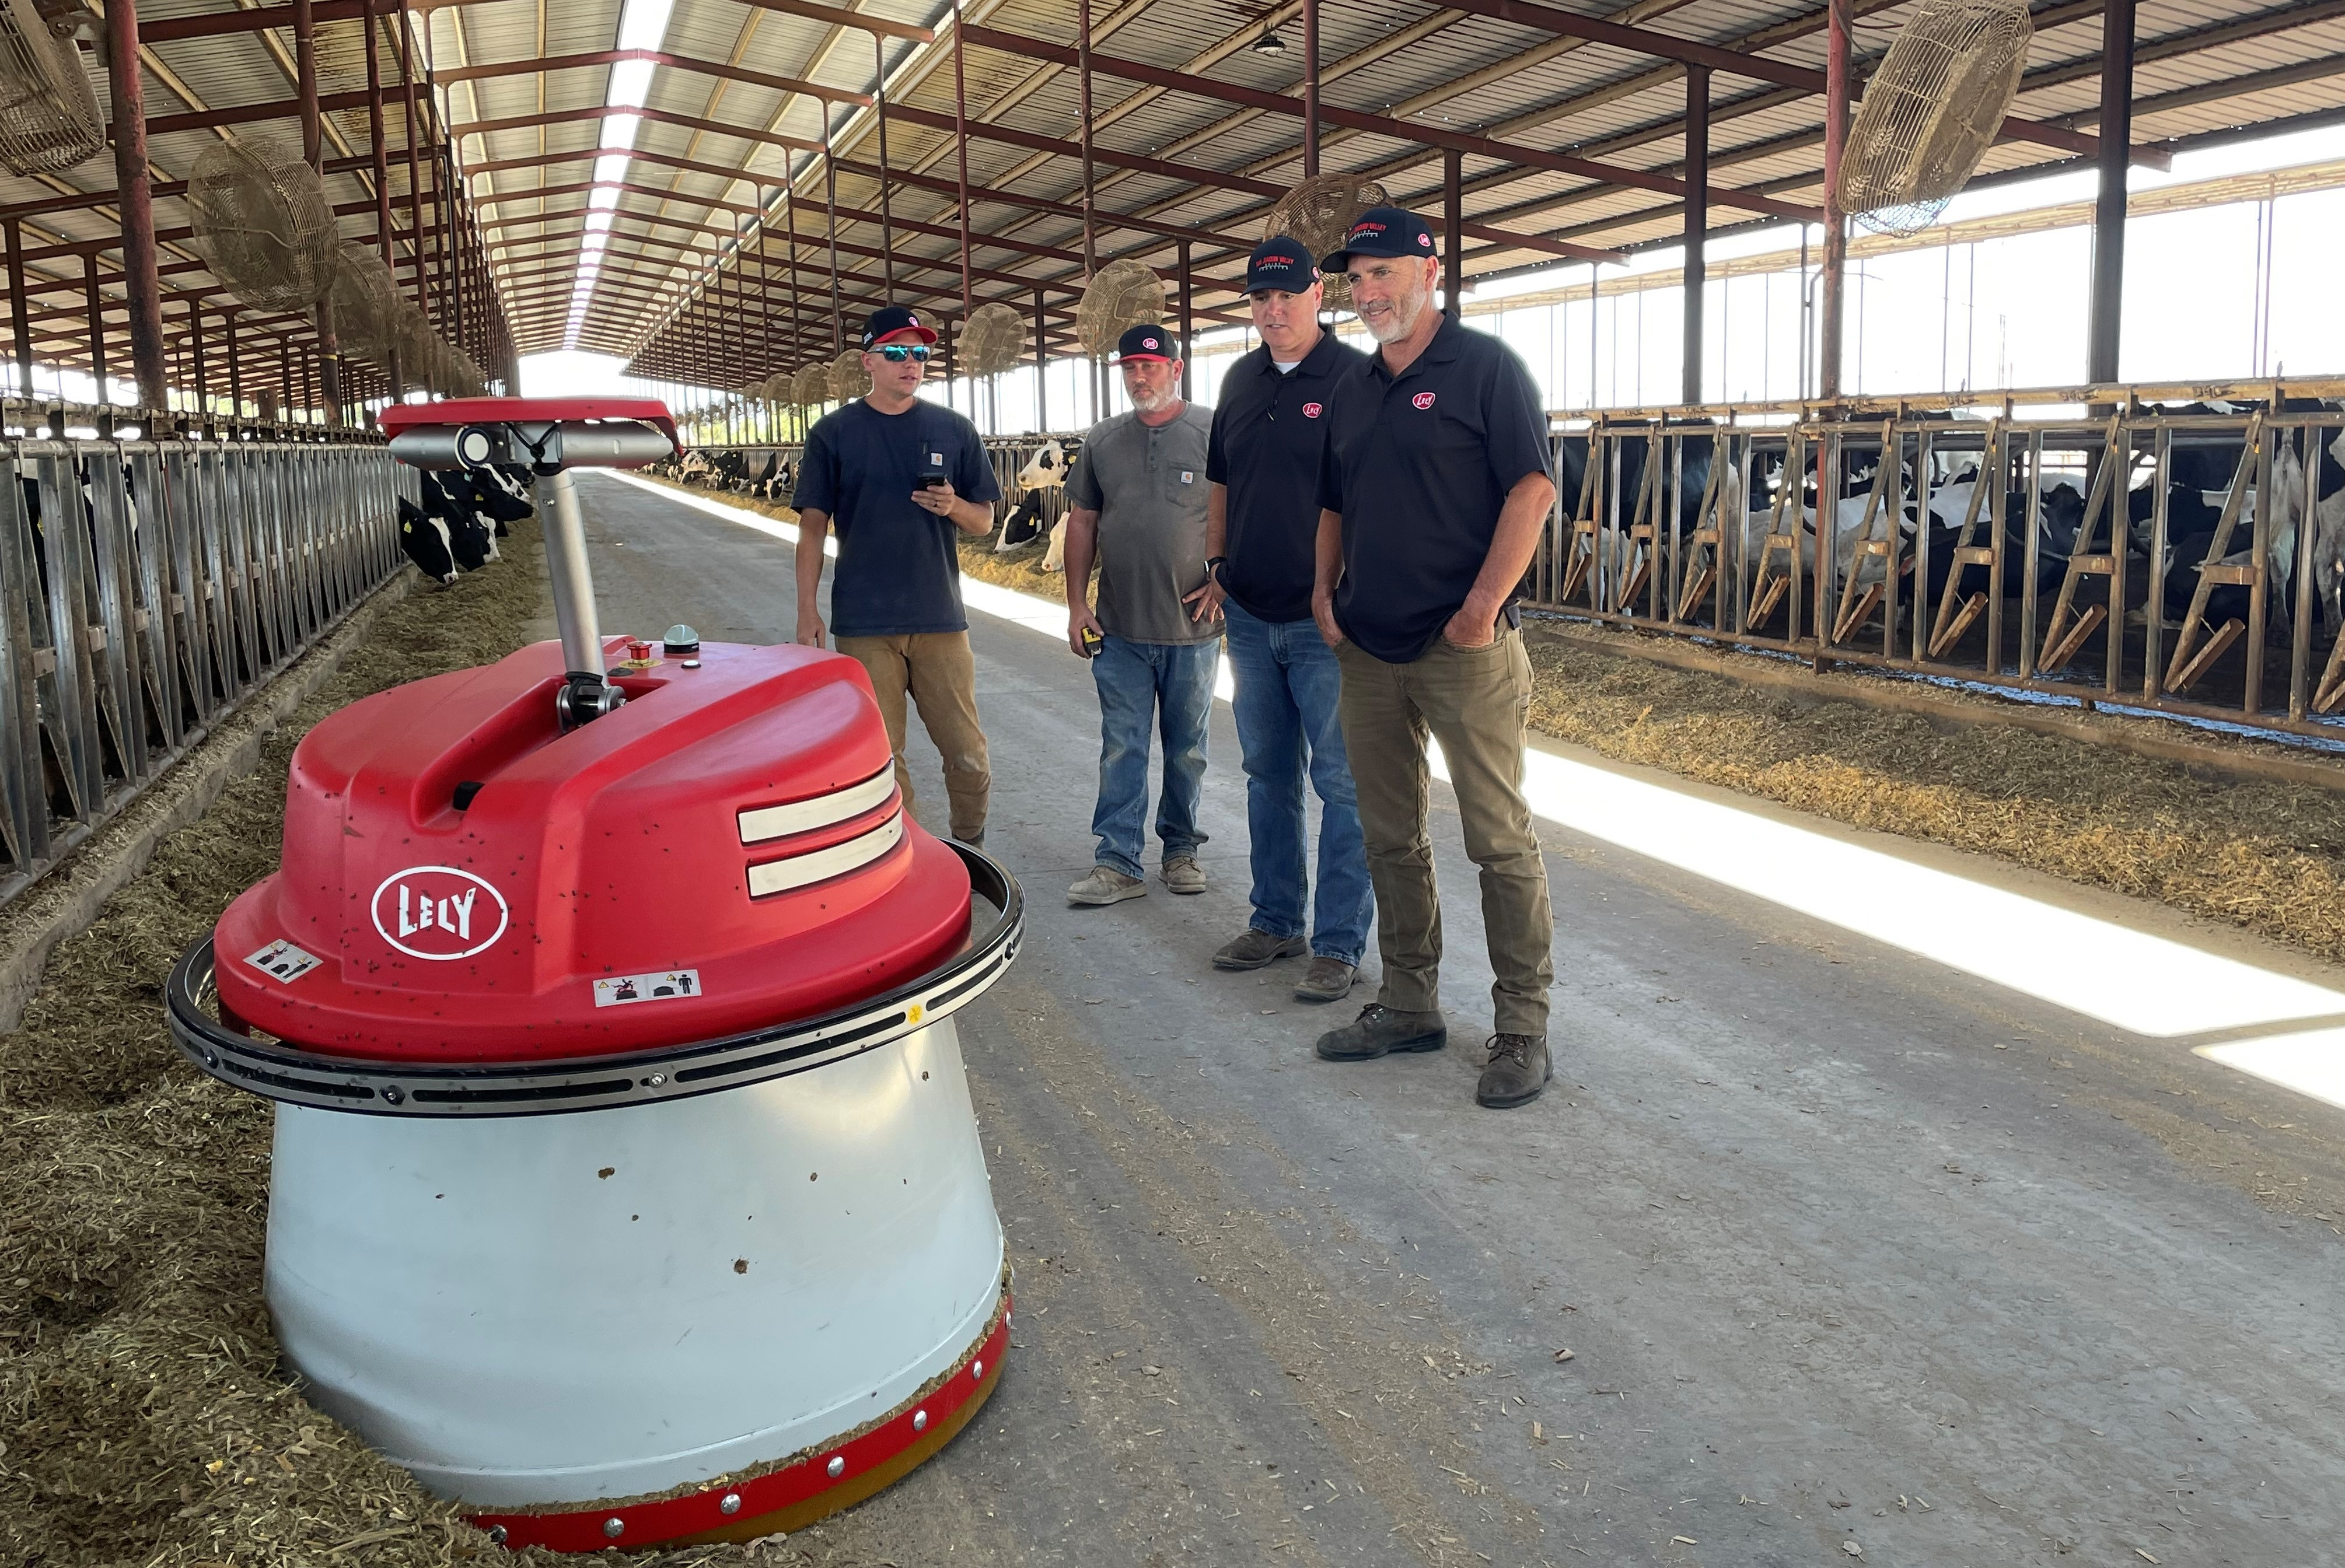 San Joaquin Valley Dairy Robotics team inspecting the Lely Juno automatic feed pusher